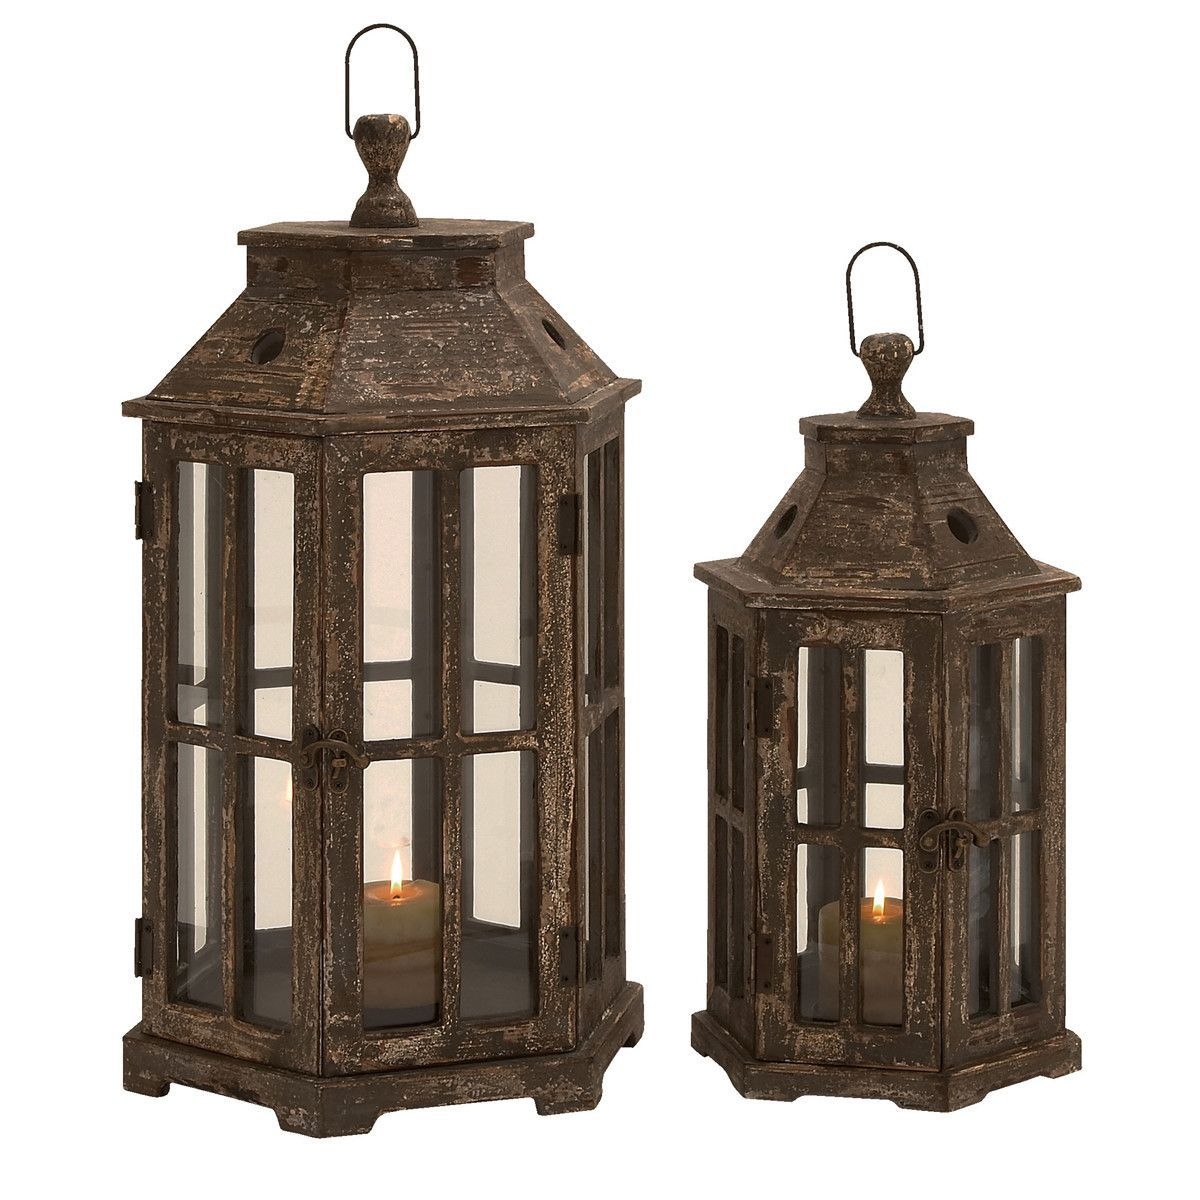 glass panels Vintage Copper and wood Lantern